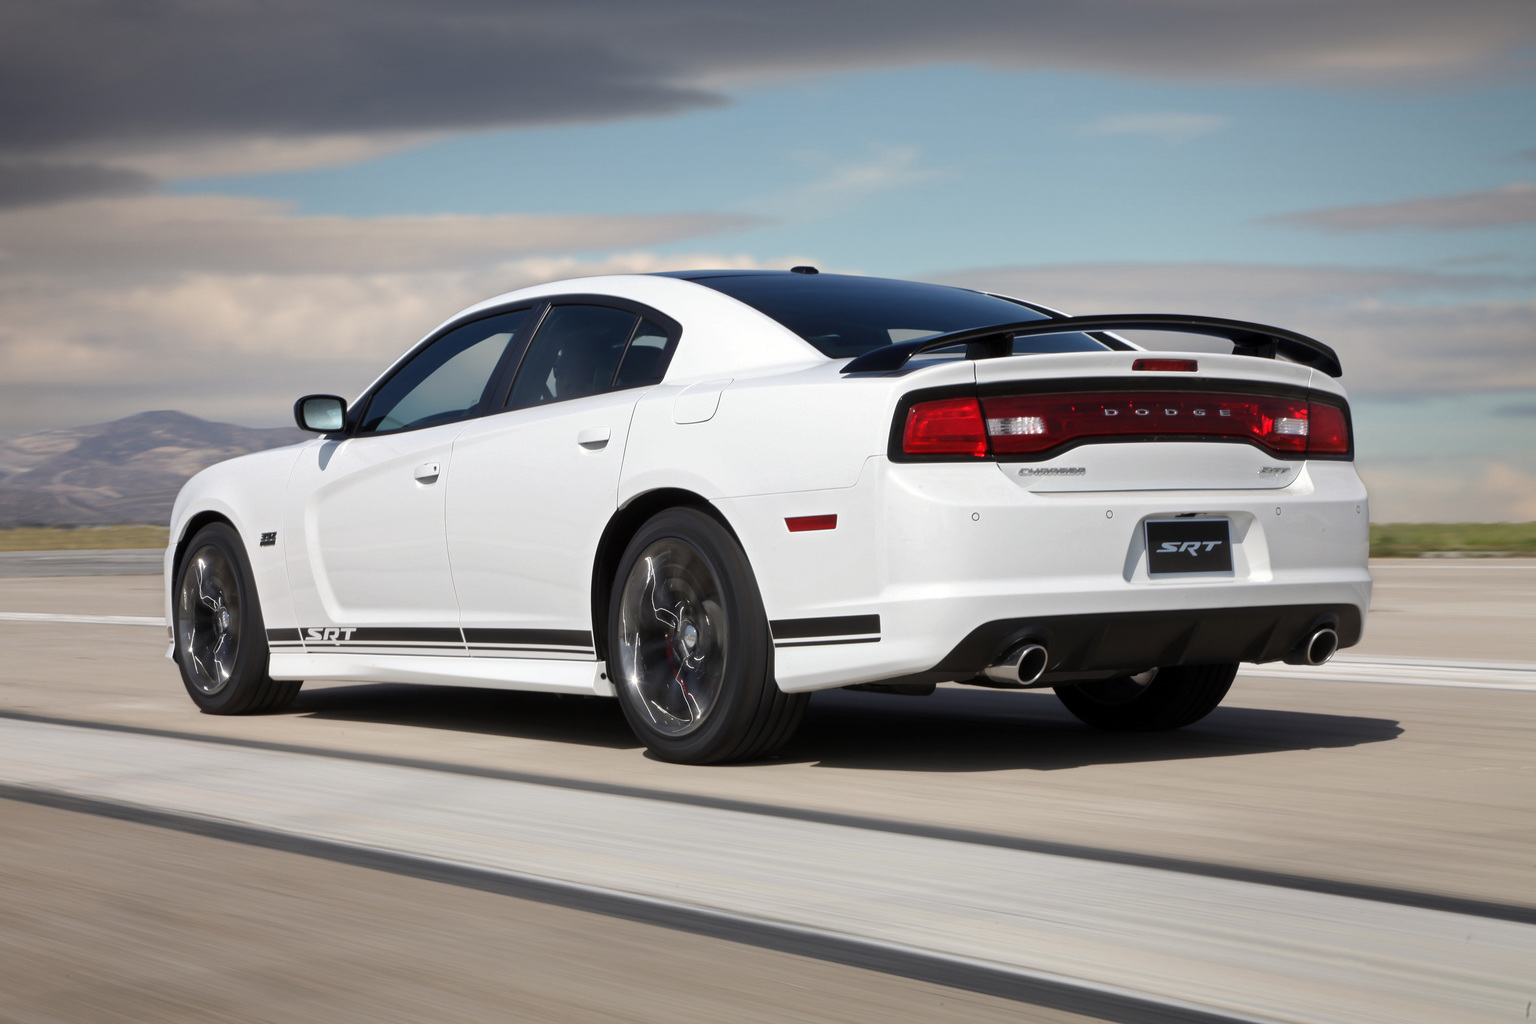 2013 Dodge Charger SRT8 392 Appearance Package